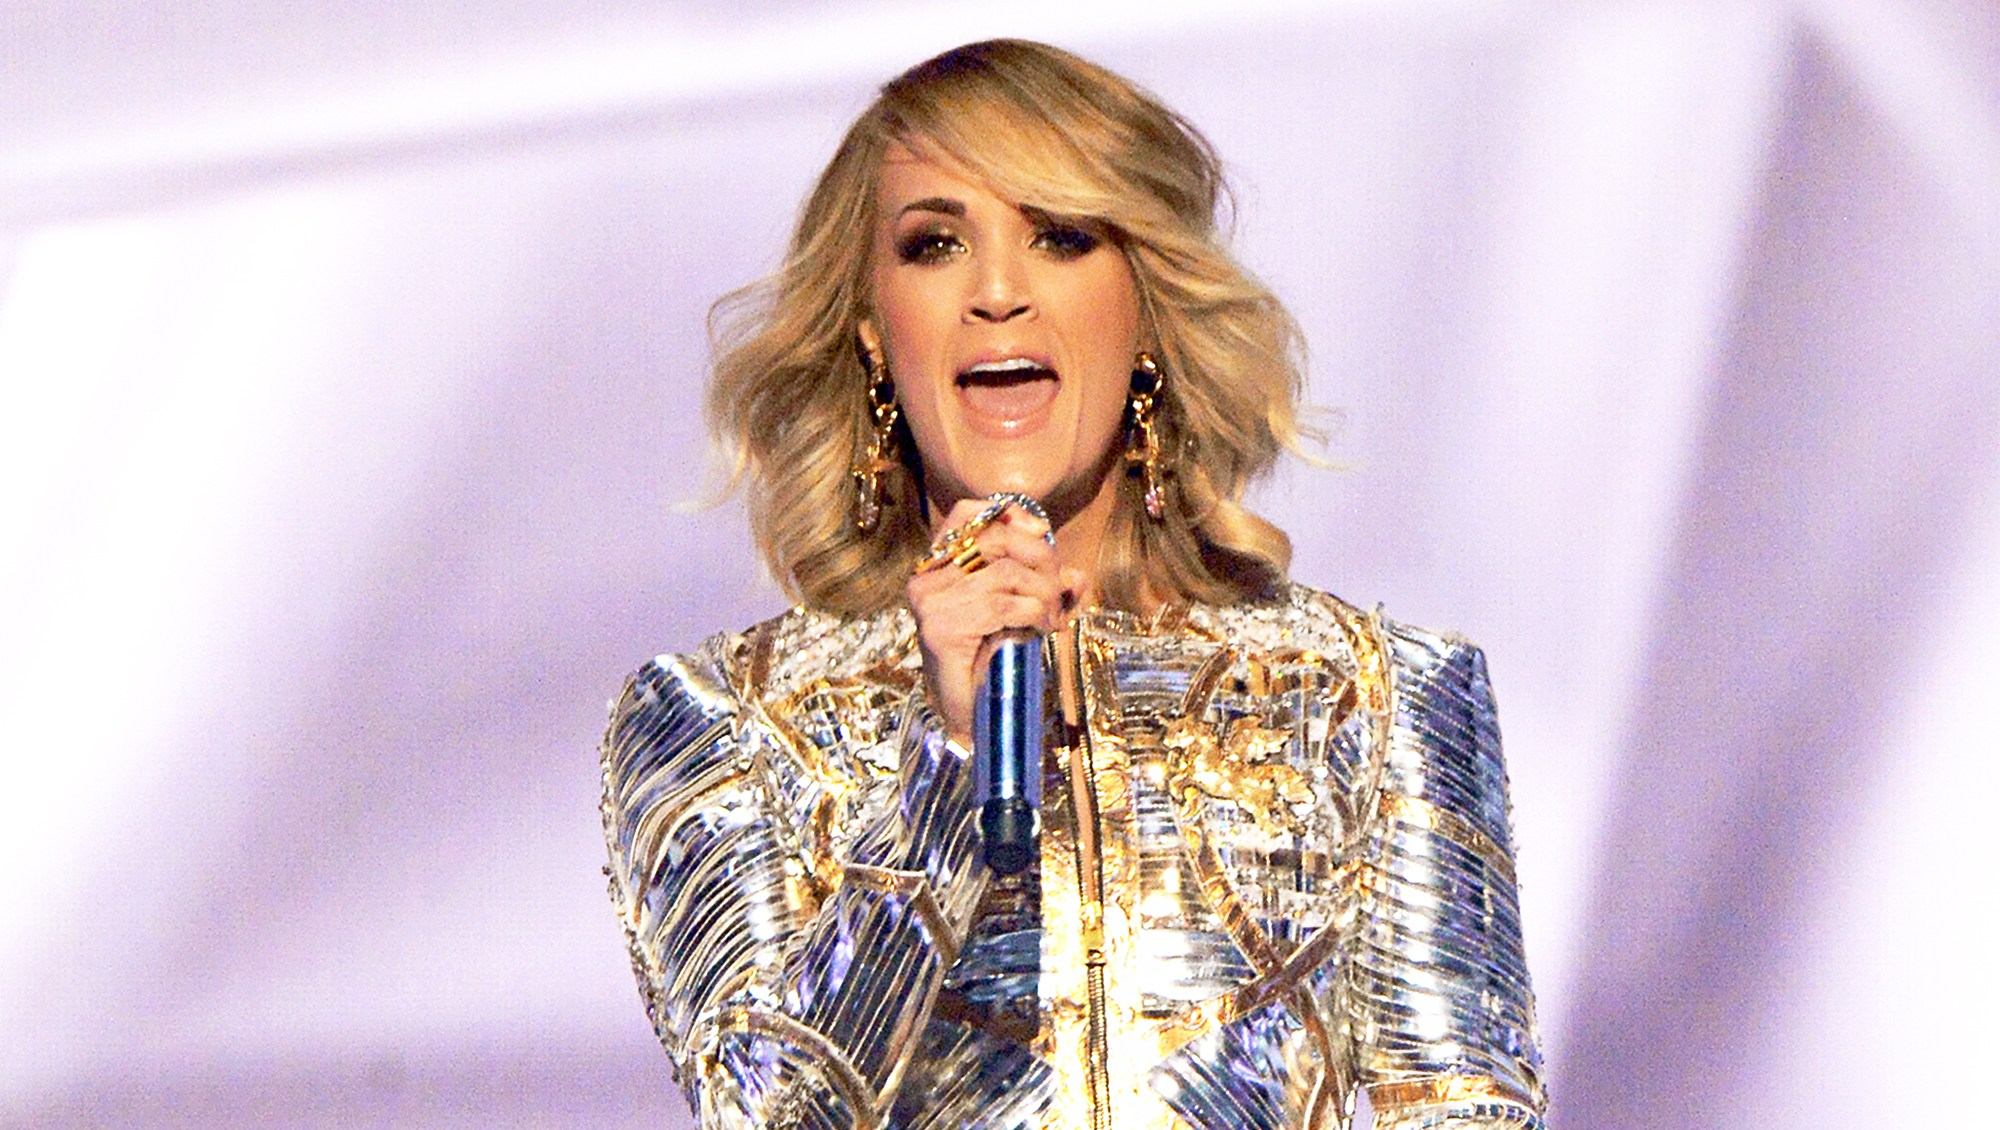 Carrie Underwood performs onstage during the 52nd Academy of Country Music Awards at T-Mobile Arena in Las Vegas, Nevada.